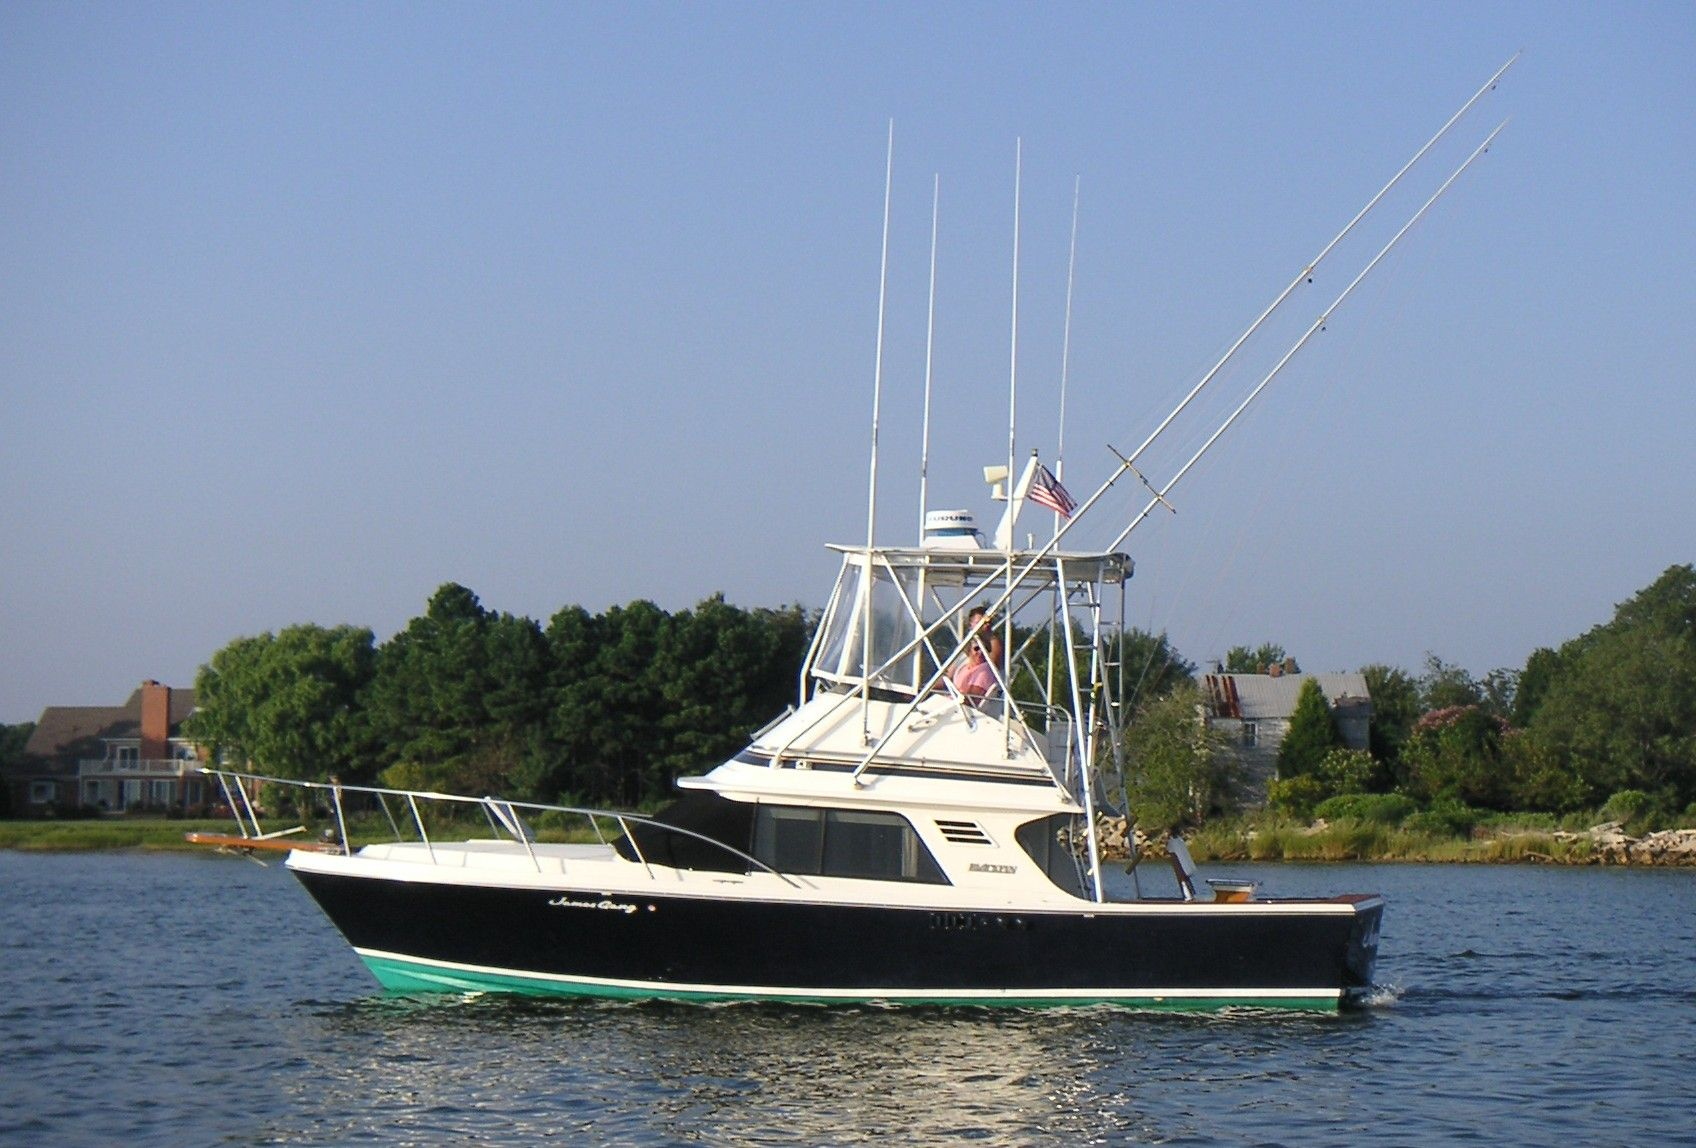 1986 Blackfin 29 Sports Fishing Boat James Gang Hmy Yacht Sales Cruisair Marine Ac Wiring Diagram Convertible